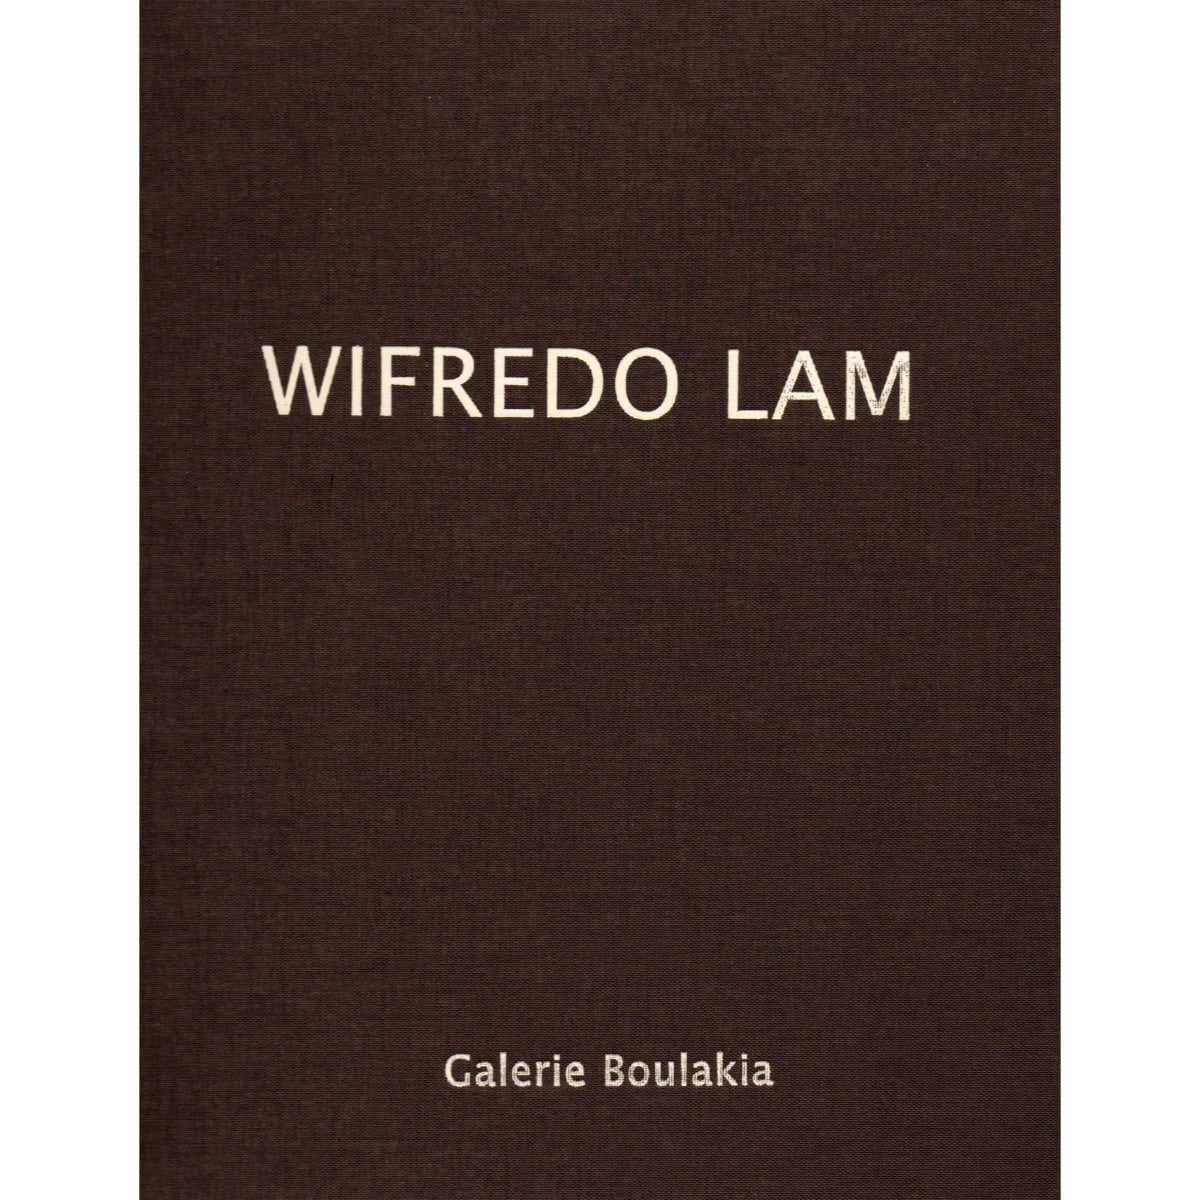 Wifredo Lam, L'oiseau du possible